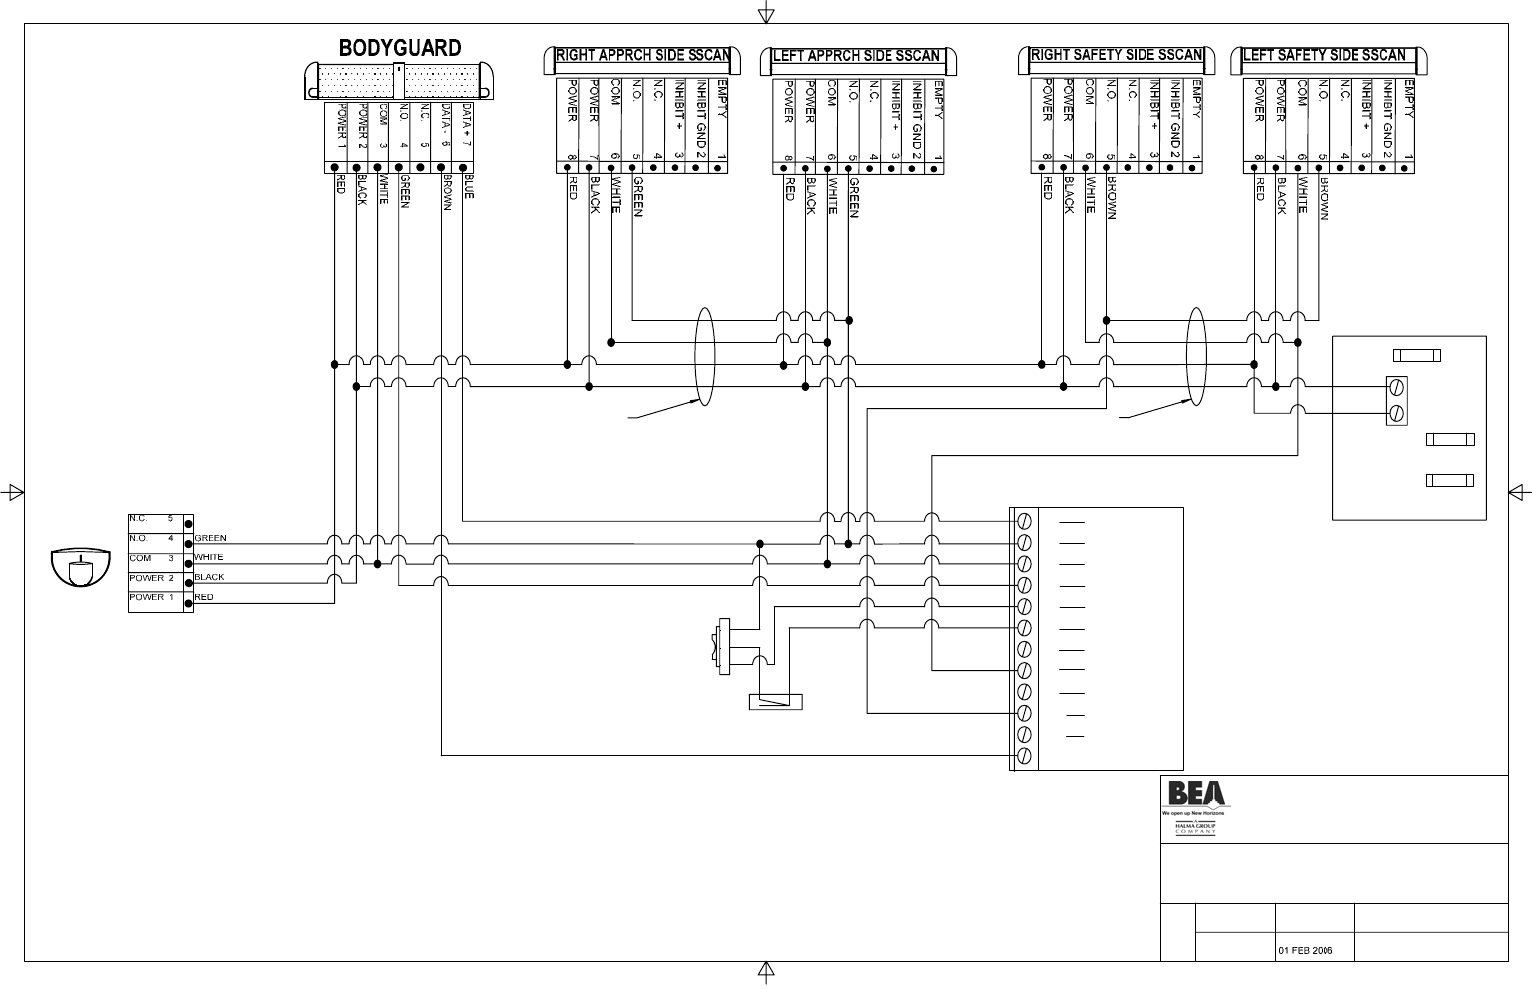 bg4 bea 80 0091 02, c2150 manual c4190 control, c3938 p s bea ixio wiring diagram at gsmportal.co